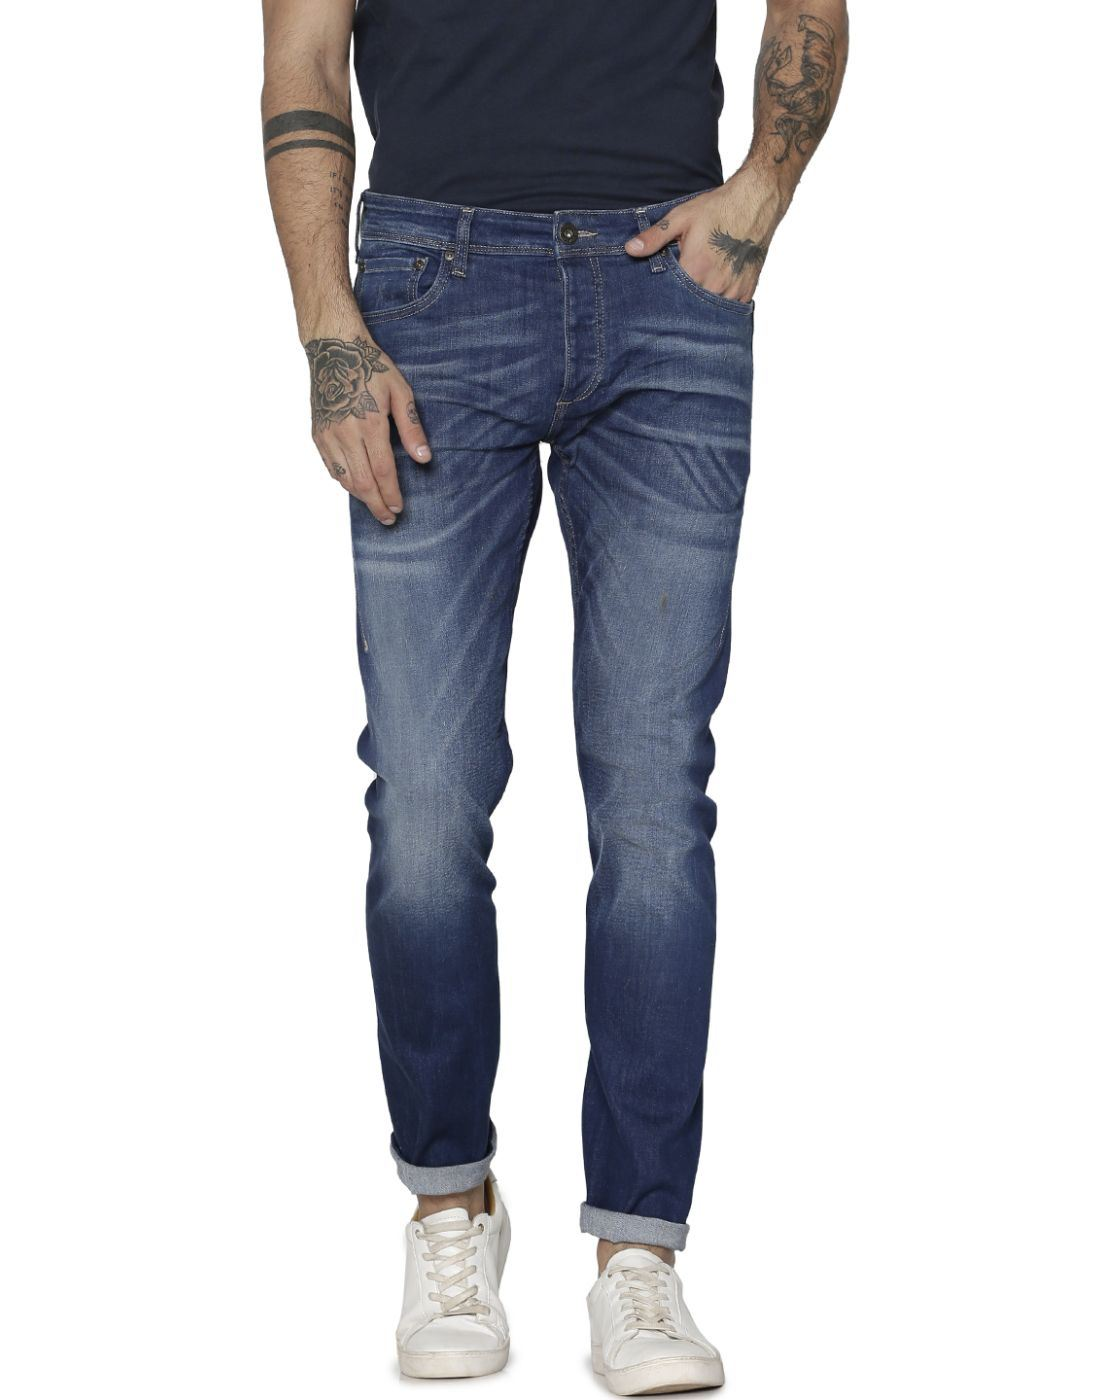 Jack & Jones Casual Solid Men Jeans